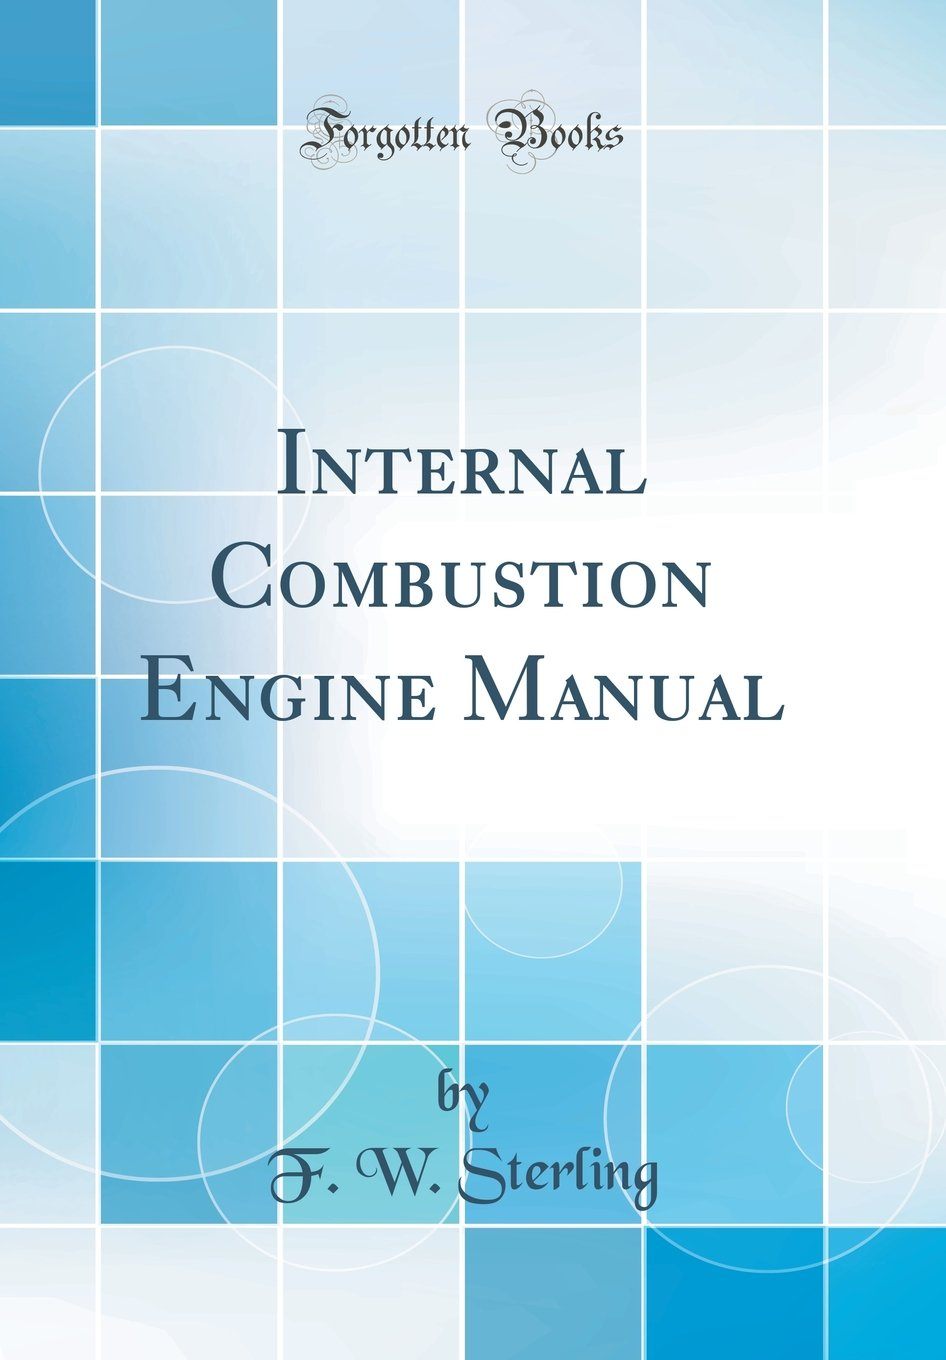 Internal Combustion Engine Manual (Classic Reprint): F W Sterling:  9780266605010: Amazon.com: Books